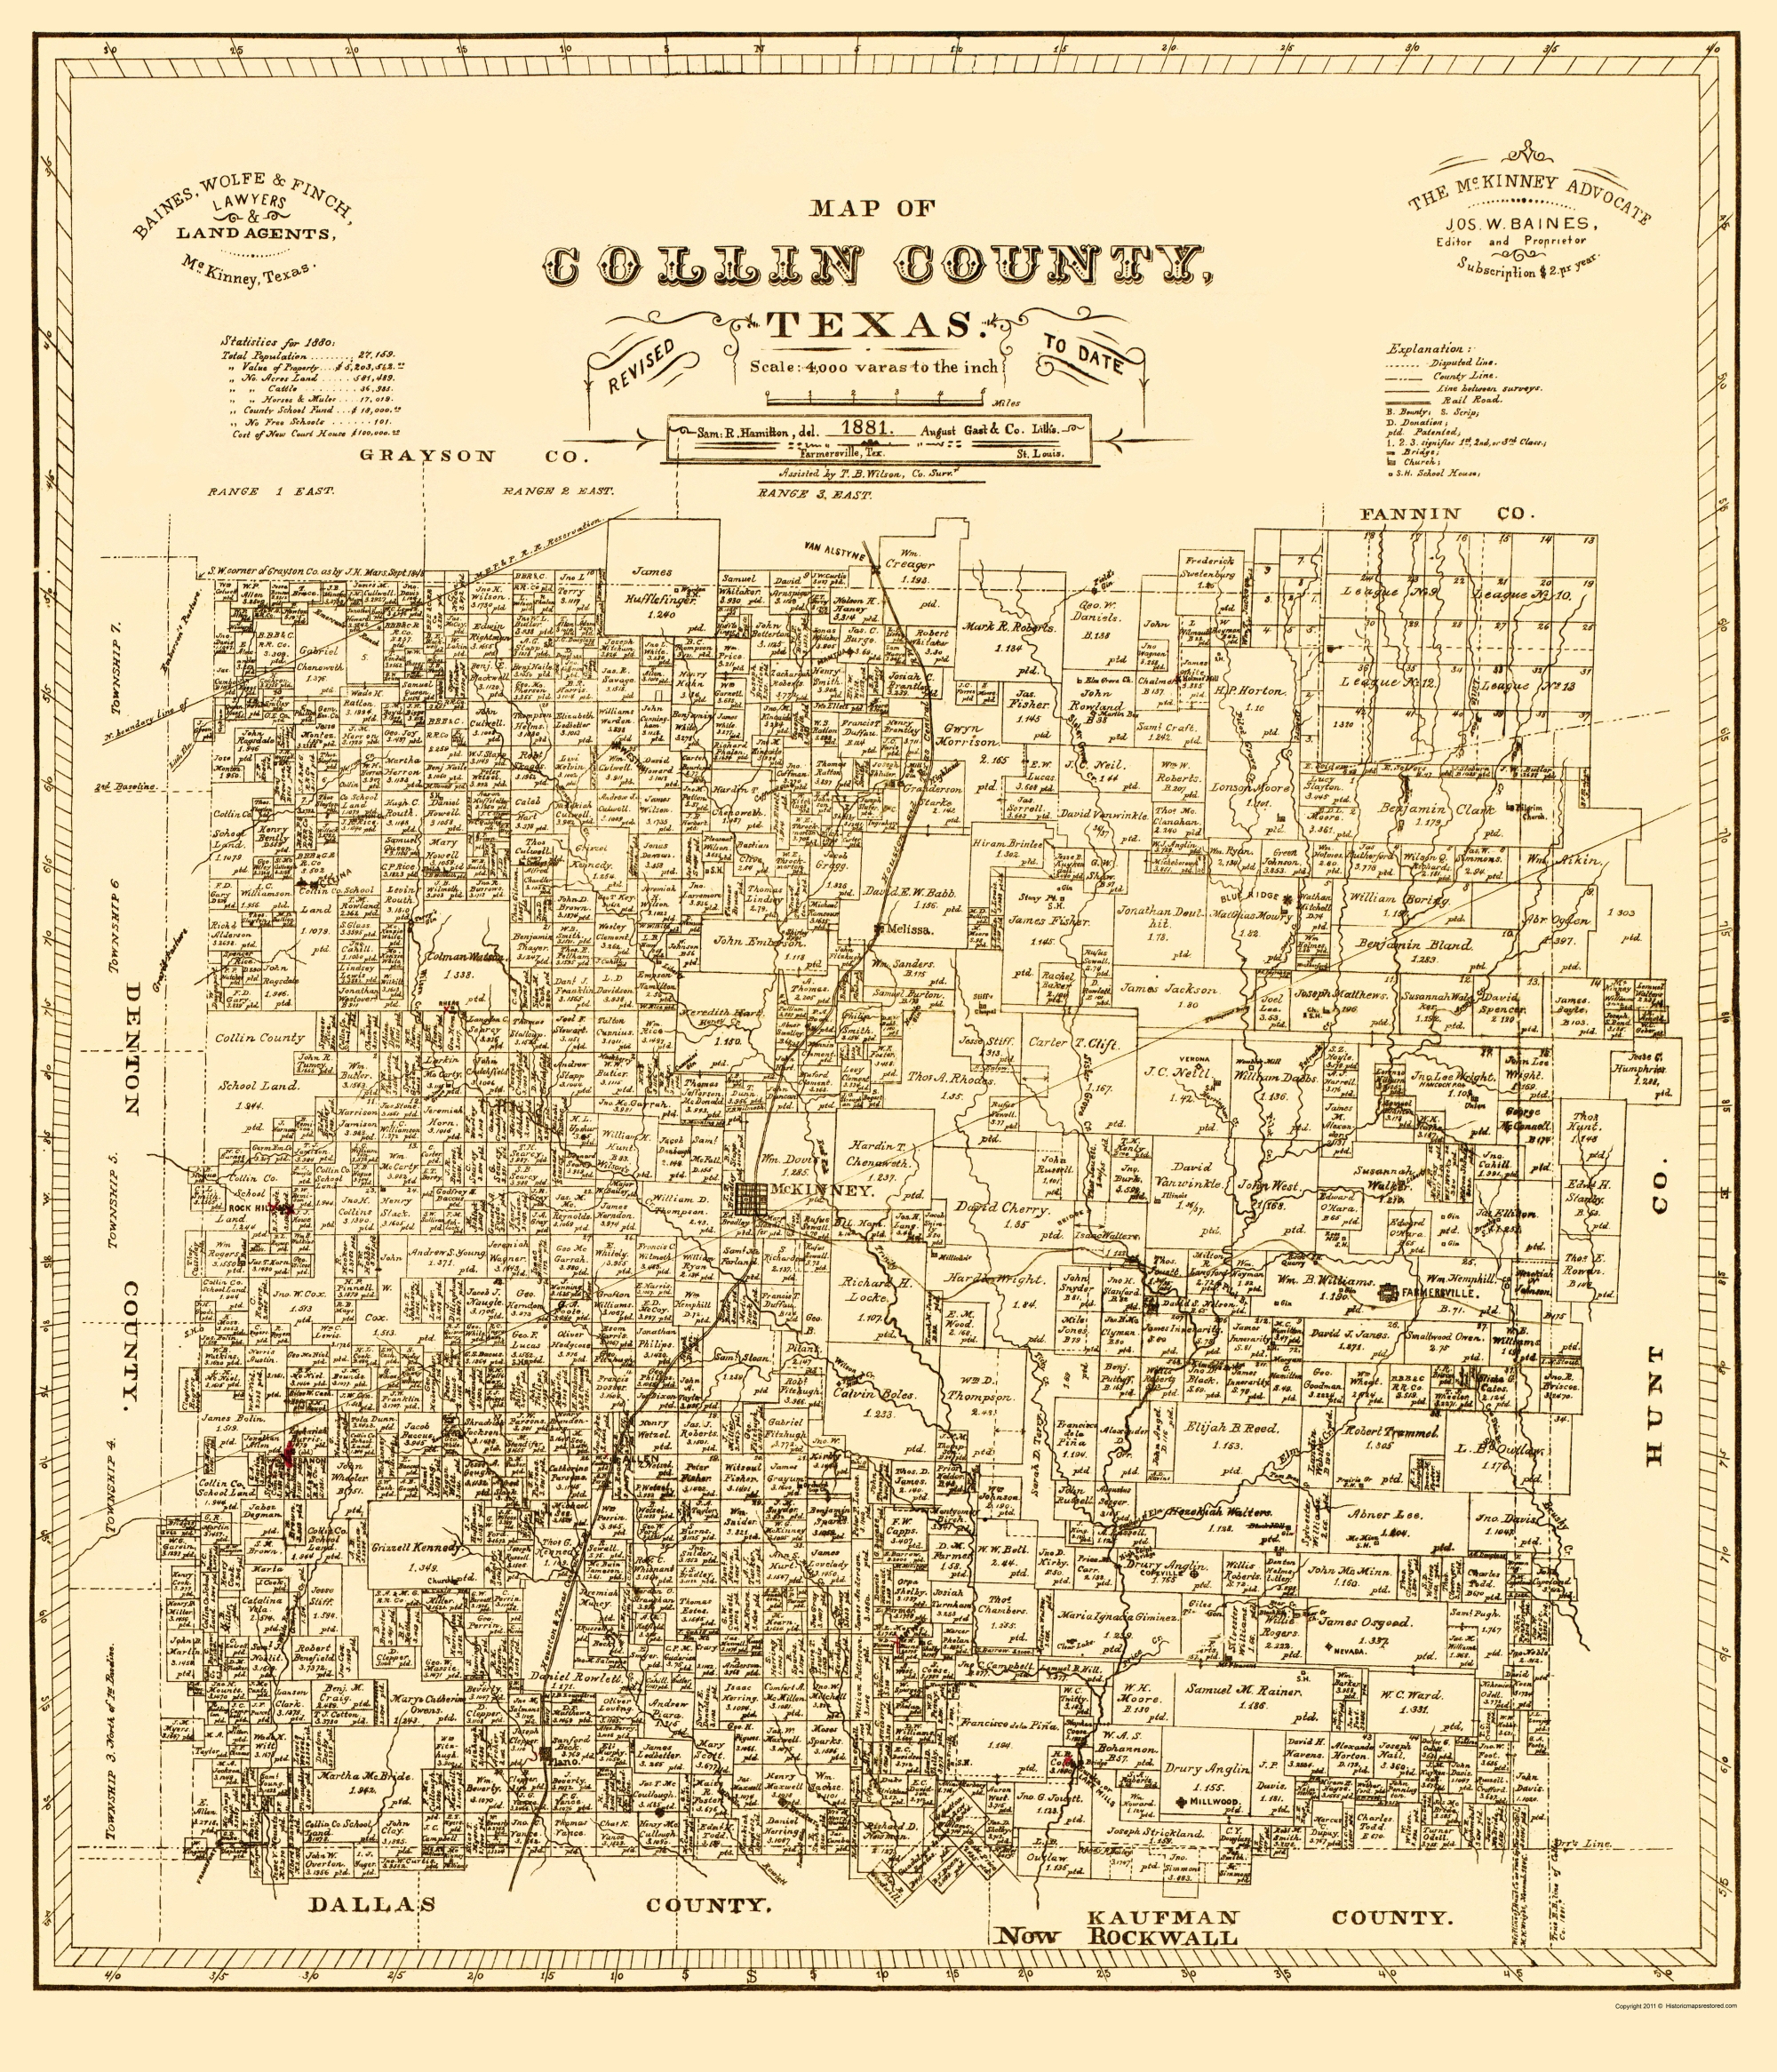 Old Map - Collin Texas Landowner - Gast 1881 - Collin County Texas Map